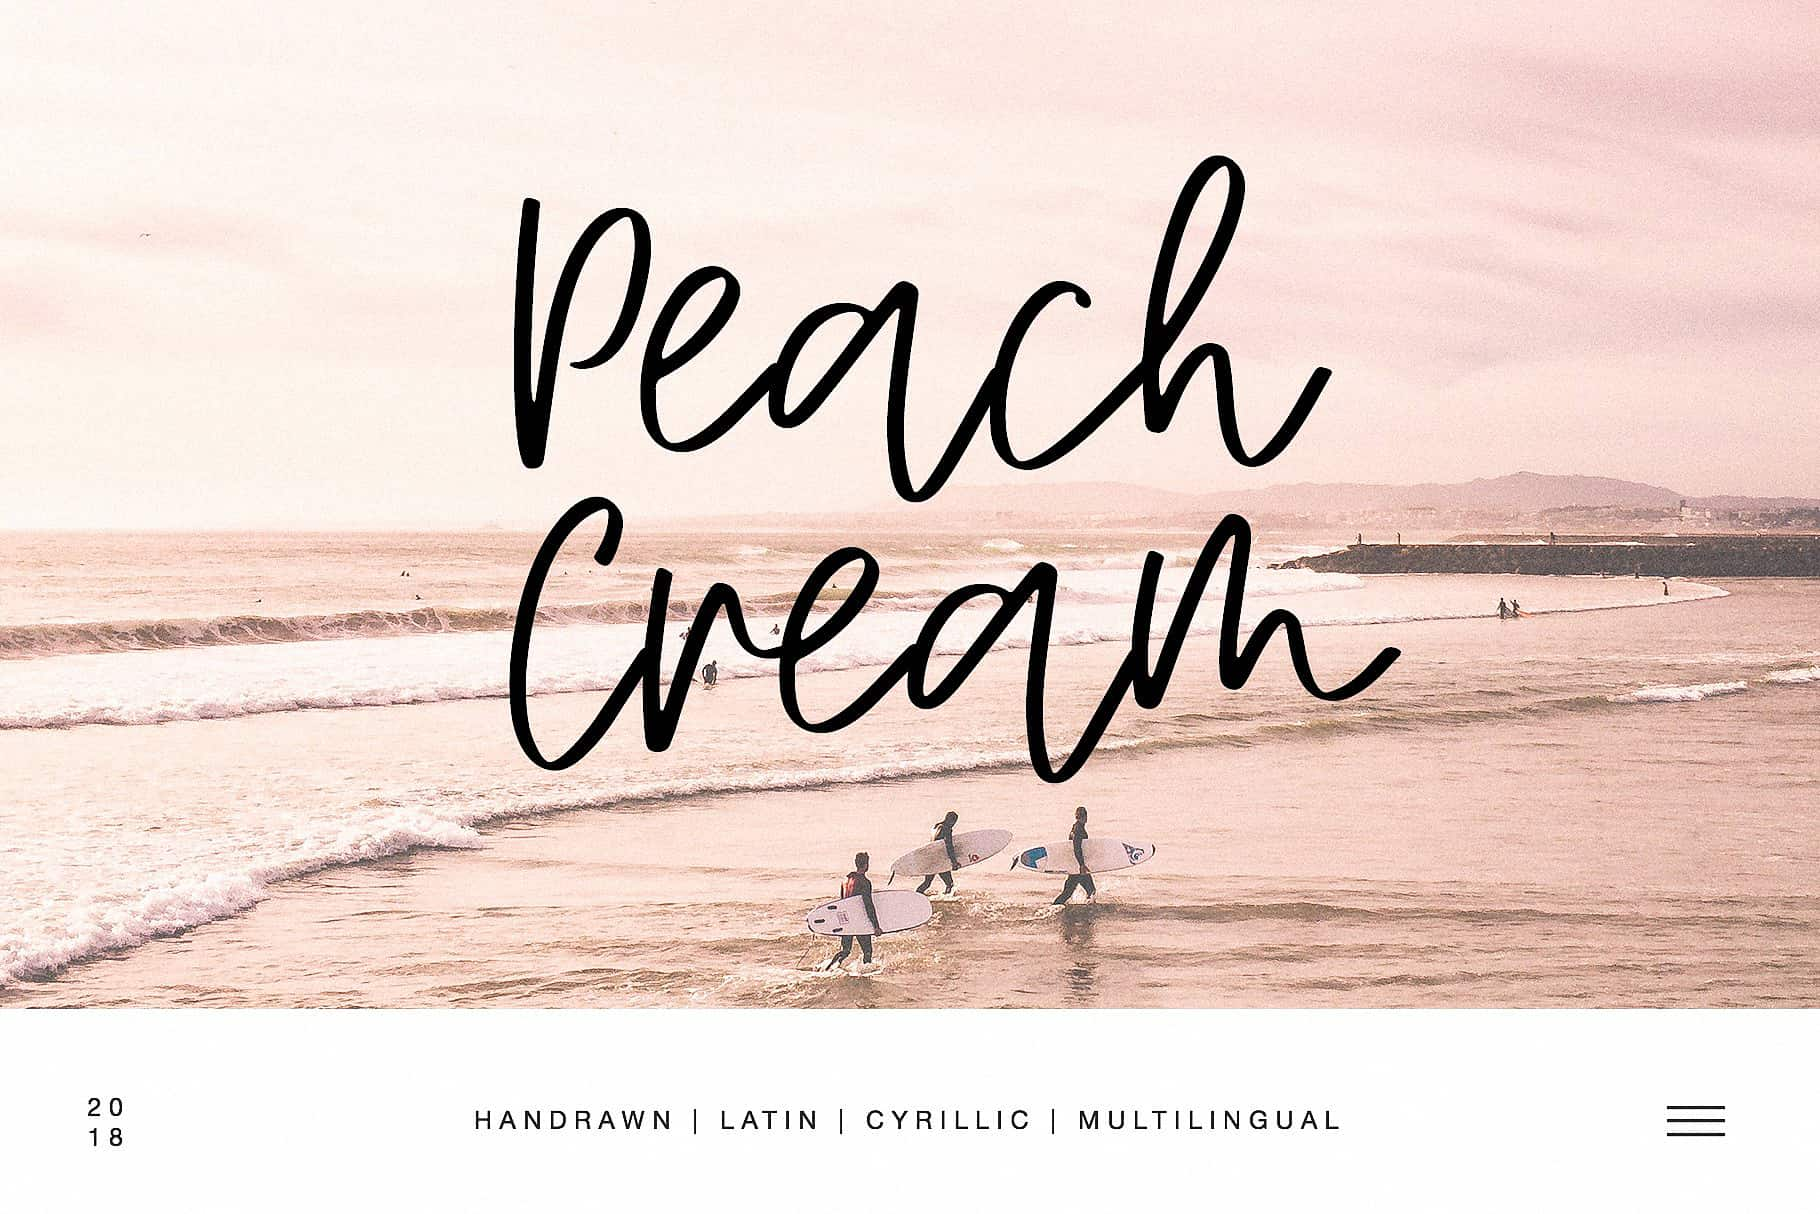 Download Peach Cream Latin & Cyrillic font (typeface)